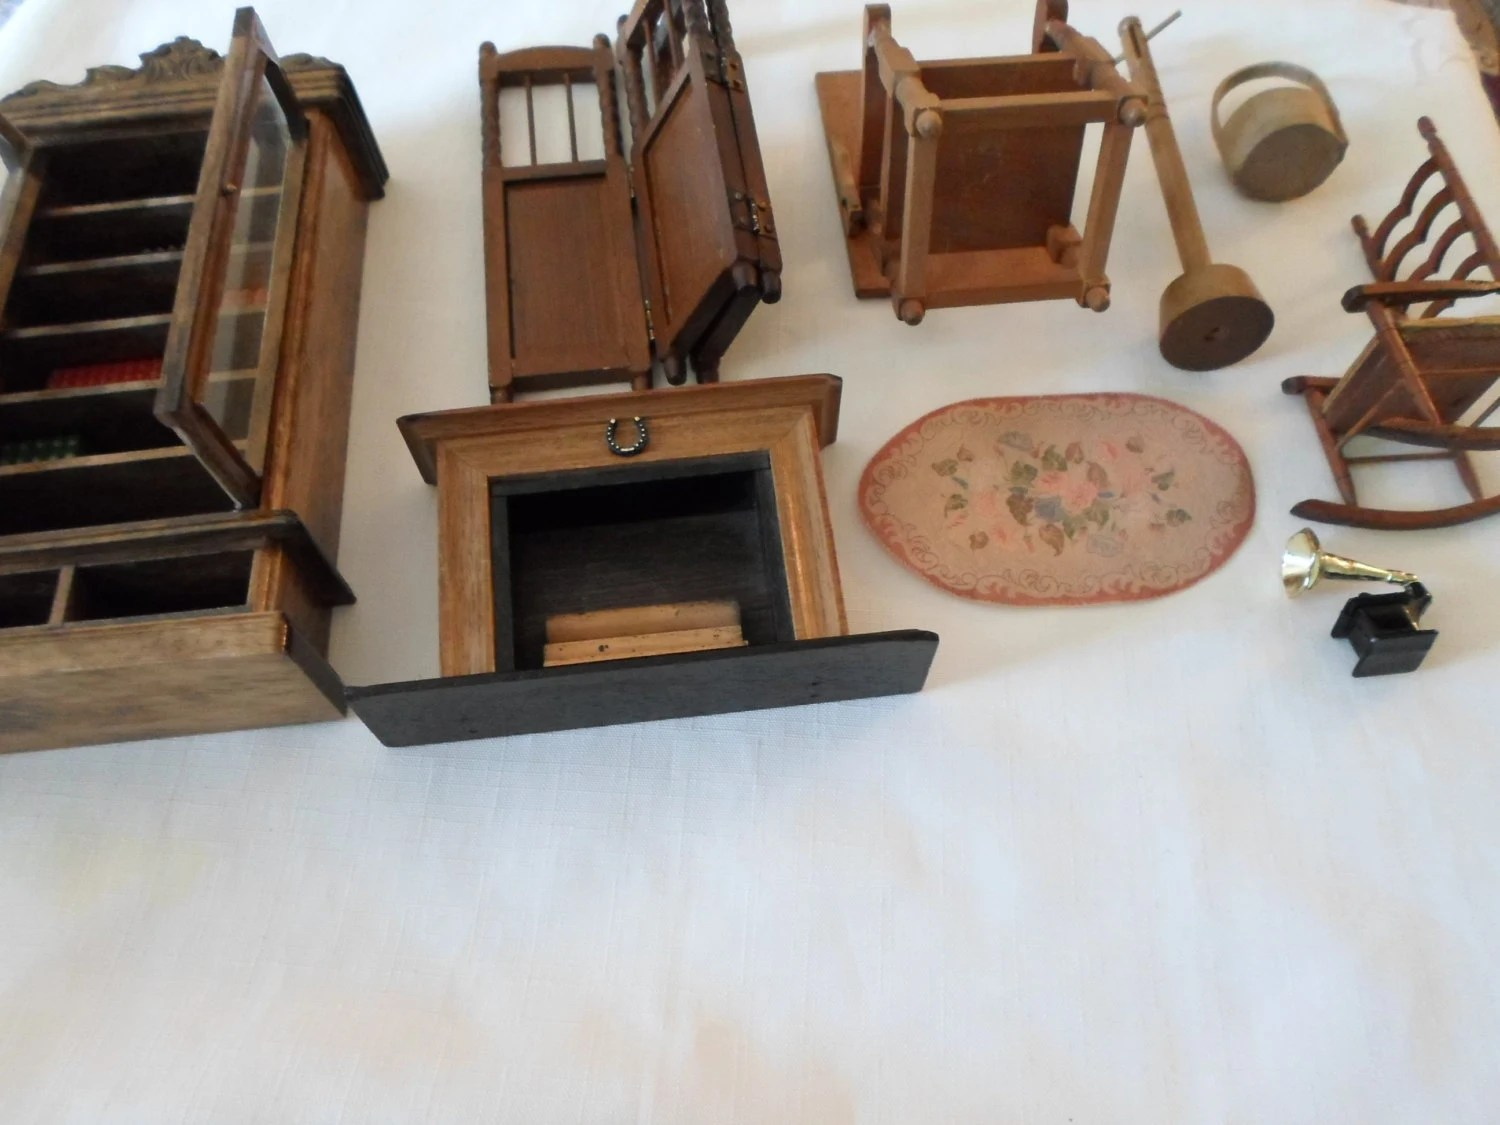 Very Impressive portraiture of WOOD FURNITURE / Lot / Miniatures / Collectibles / Diorama / Doll  with #68442D color and 1500x1125 pixels